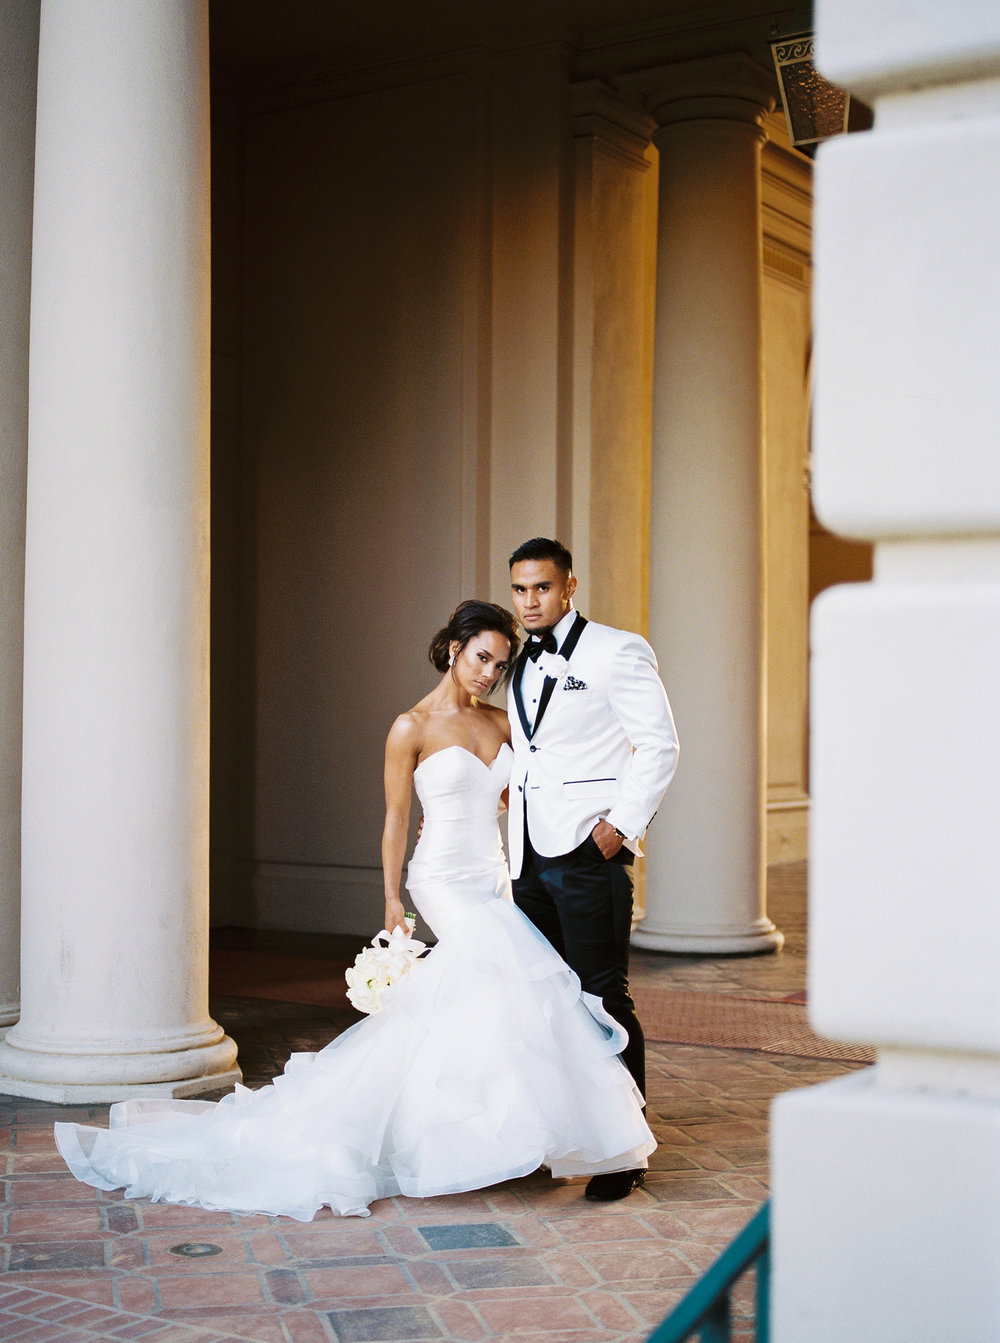 dennisroycoronel_pasadena_wedding_photographer-33.jpg